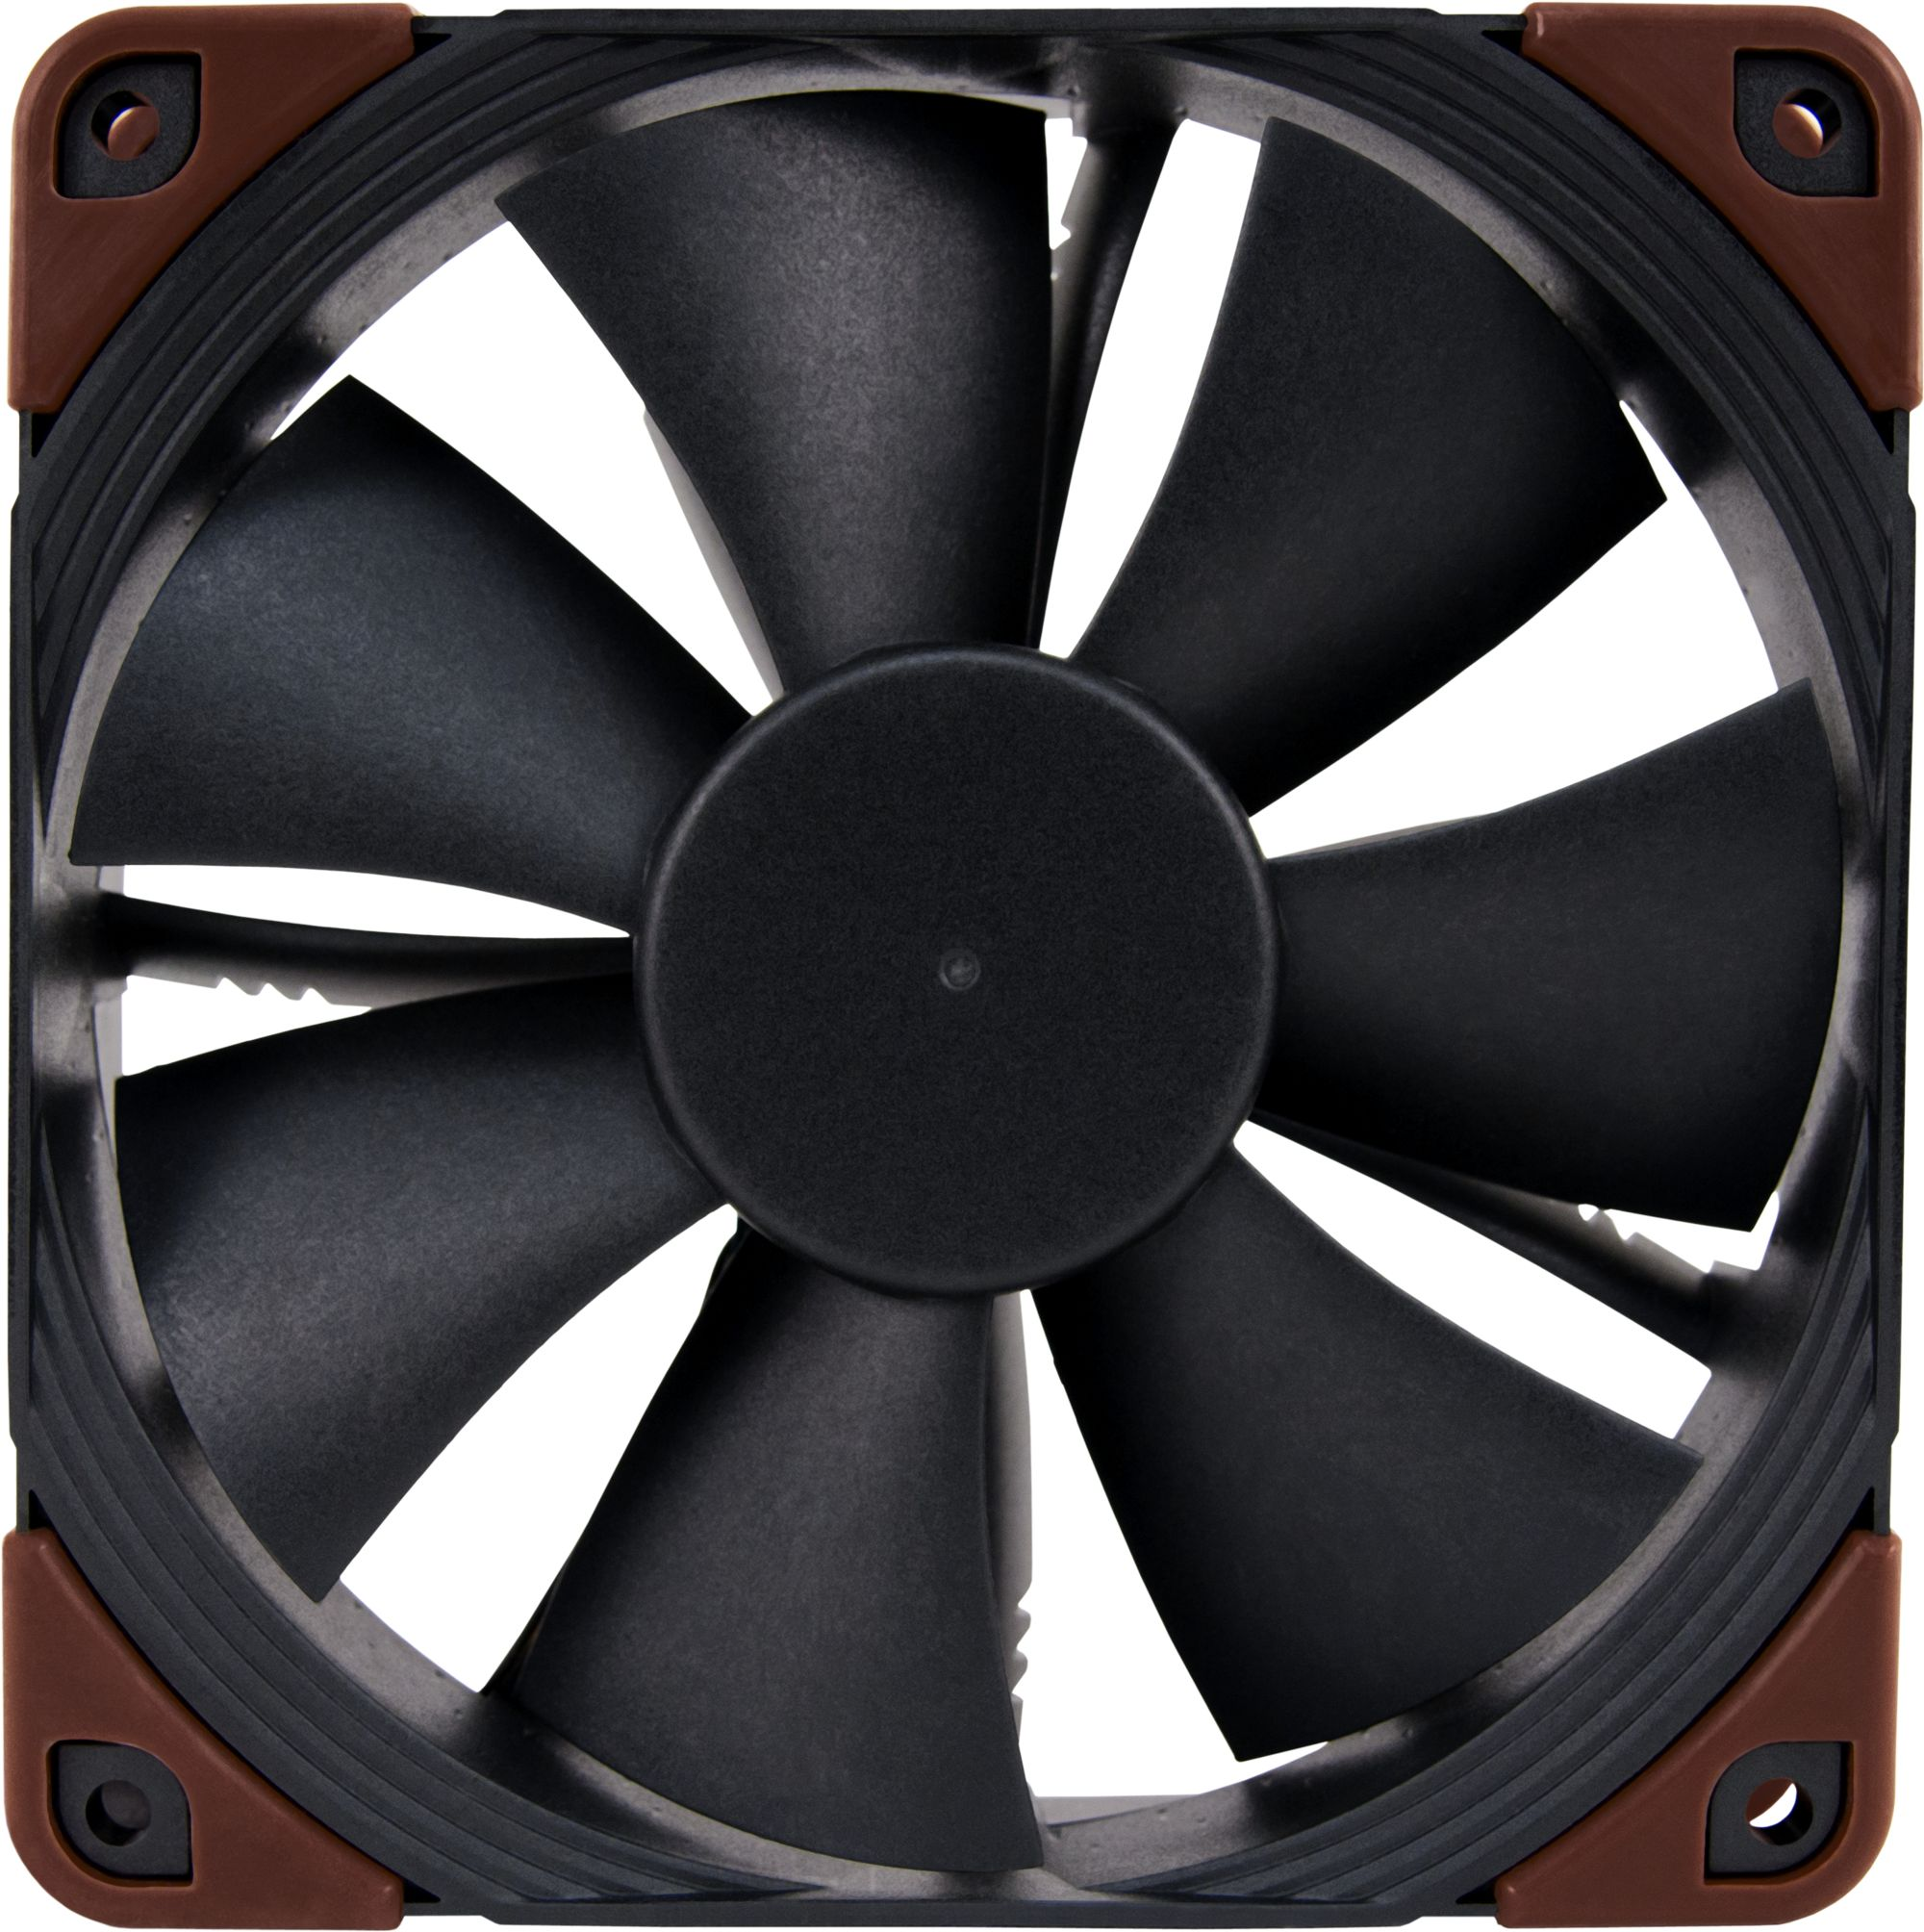 Nf F12 Ippc Pwm 12v 3000rpm 120mm High Performance Fan